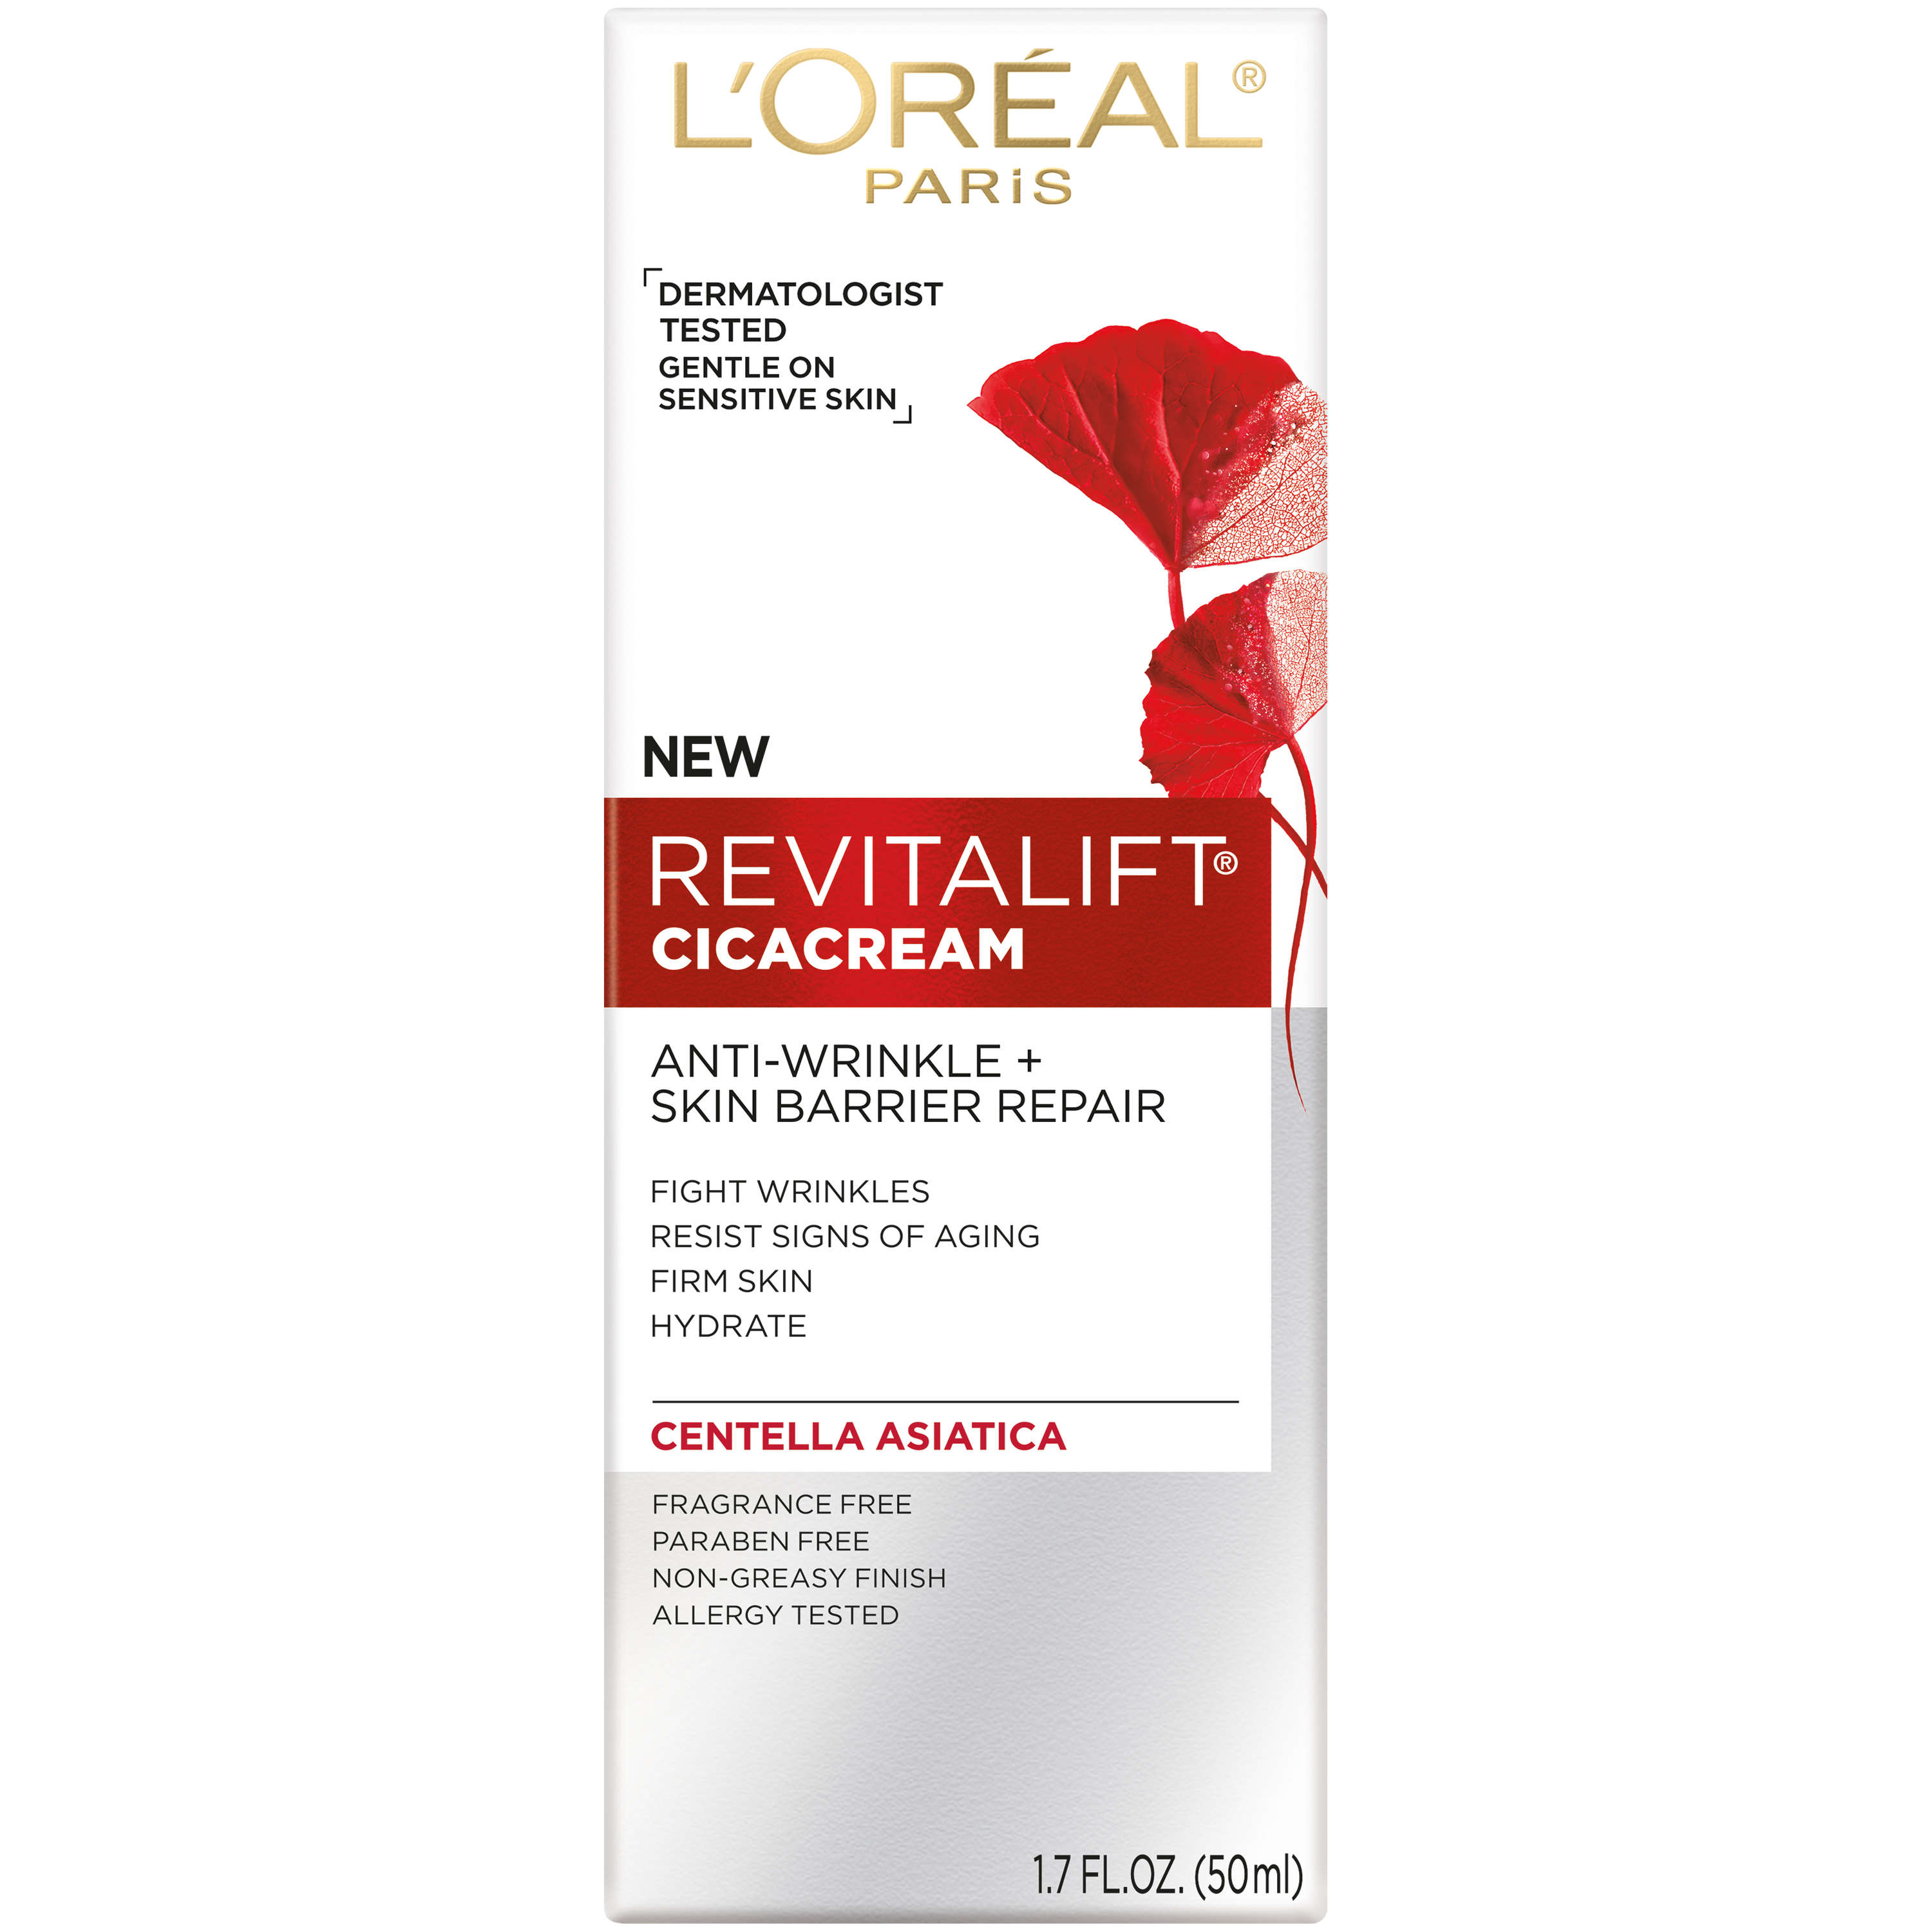 L'Oreal Paris Revitalift Cicacream Anti-Wrinkle + Skin Barrier Repair